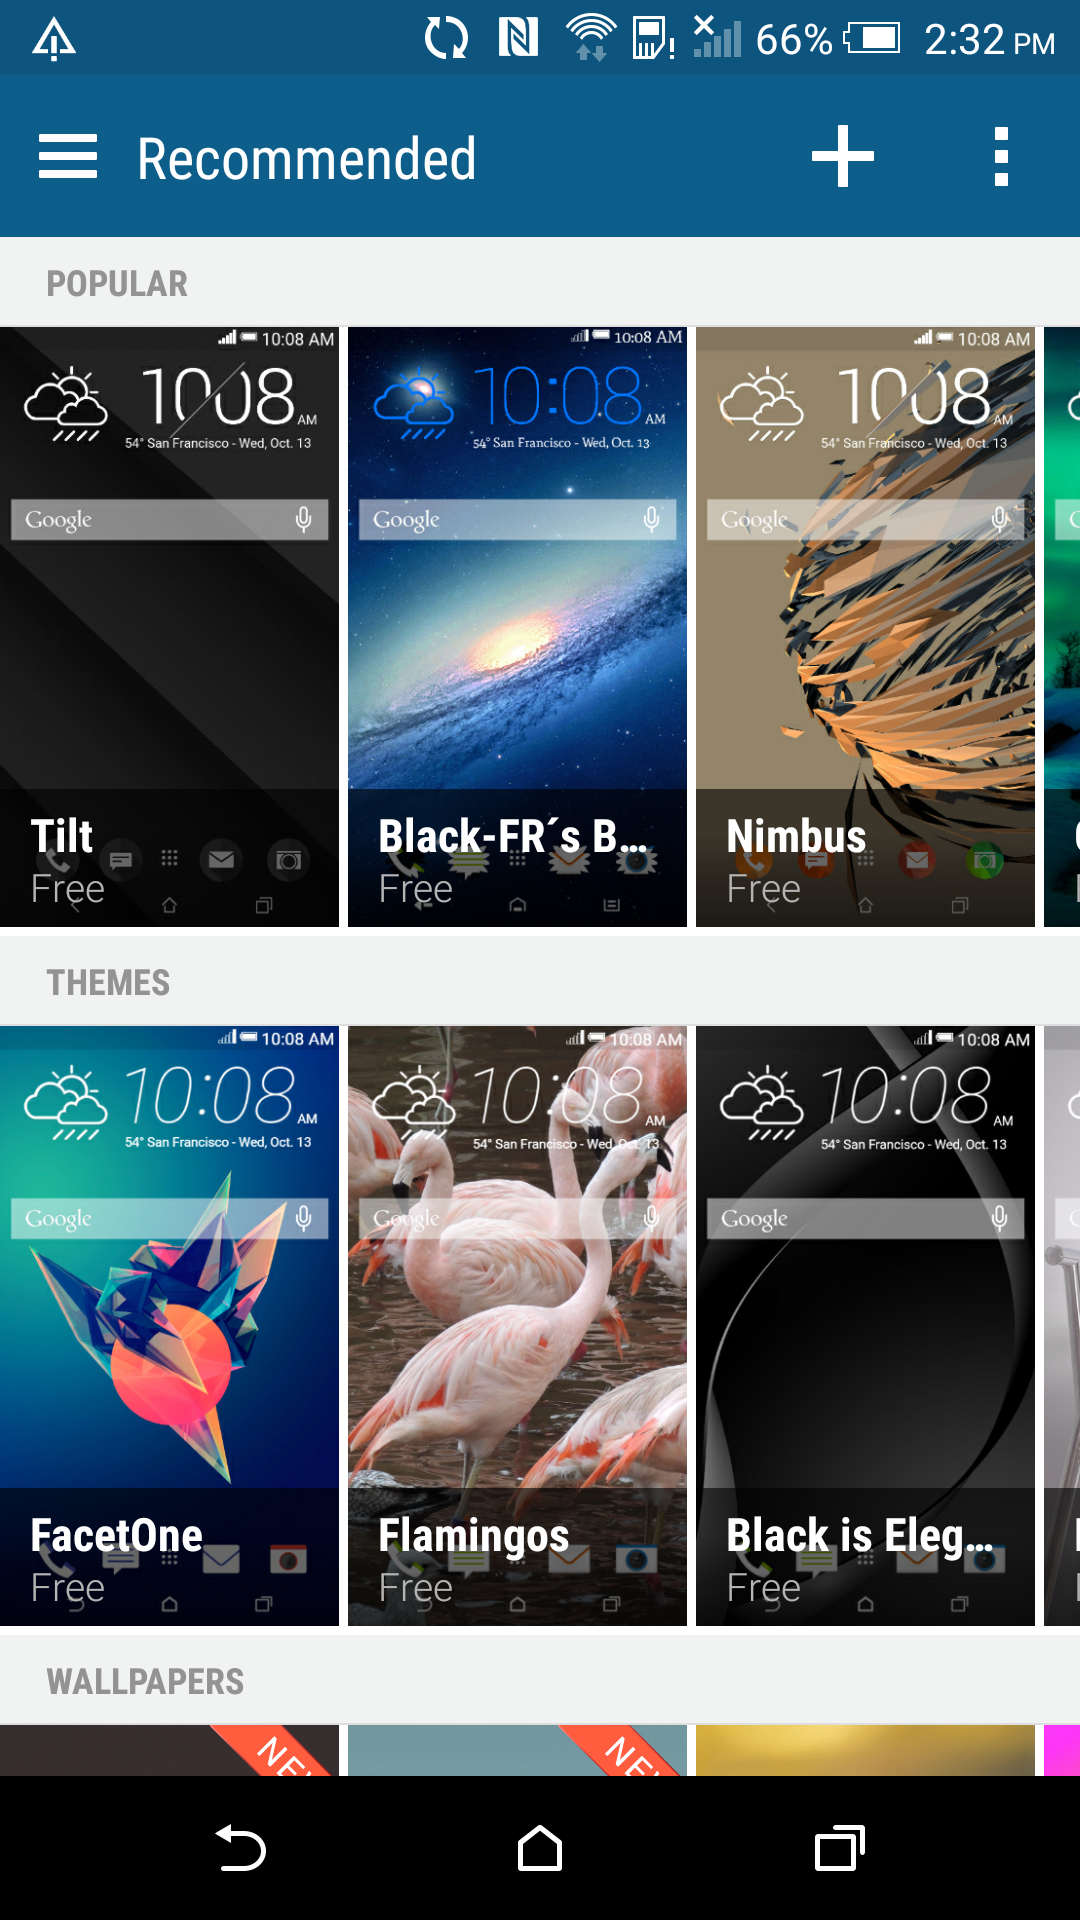 HTC's Theme store has a pretty decent selection of themes available.